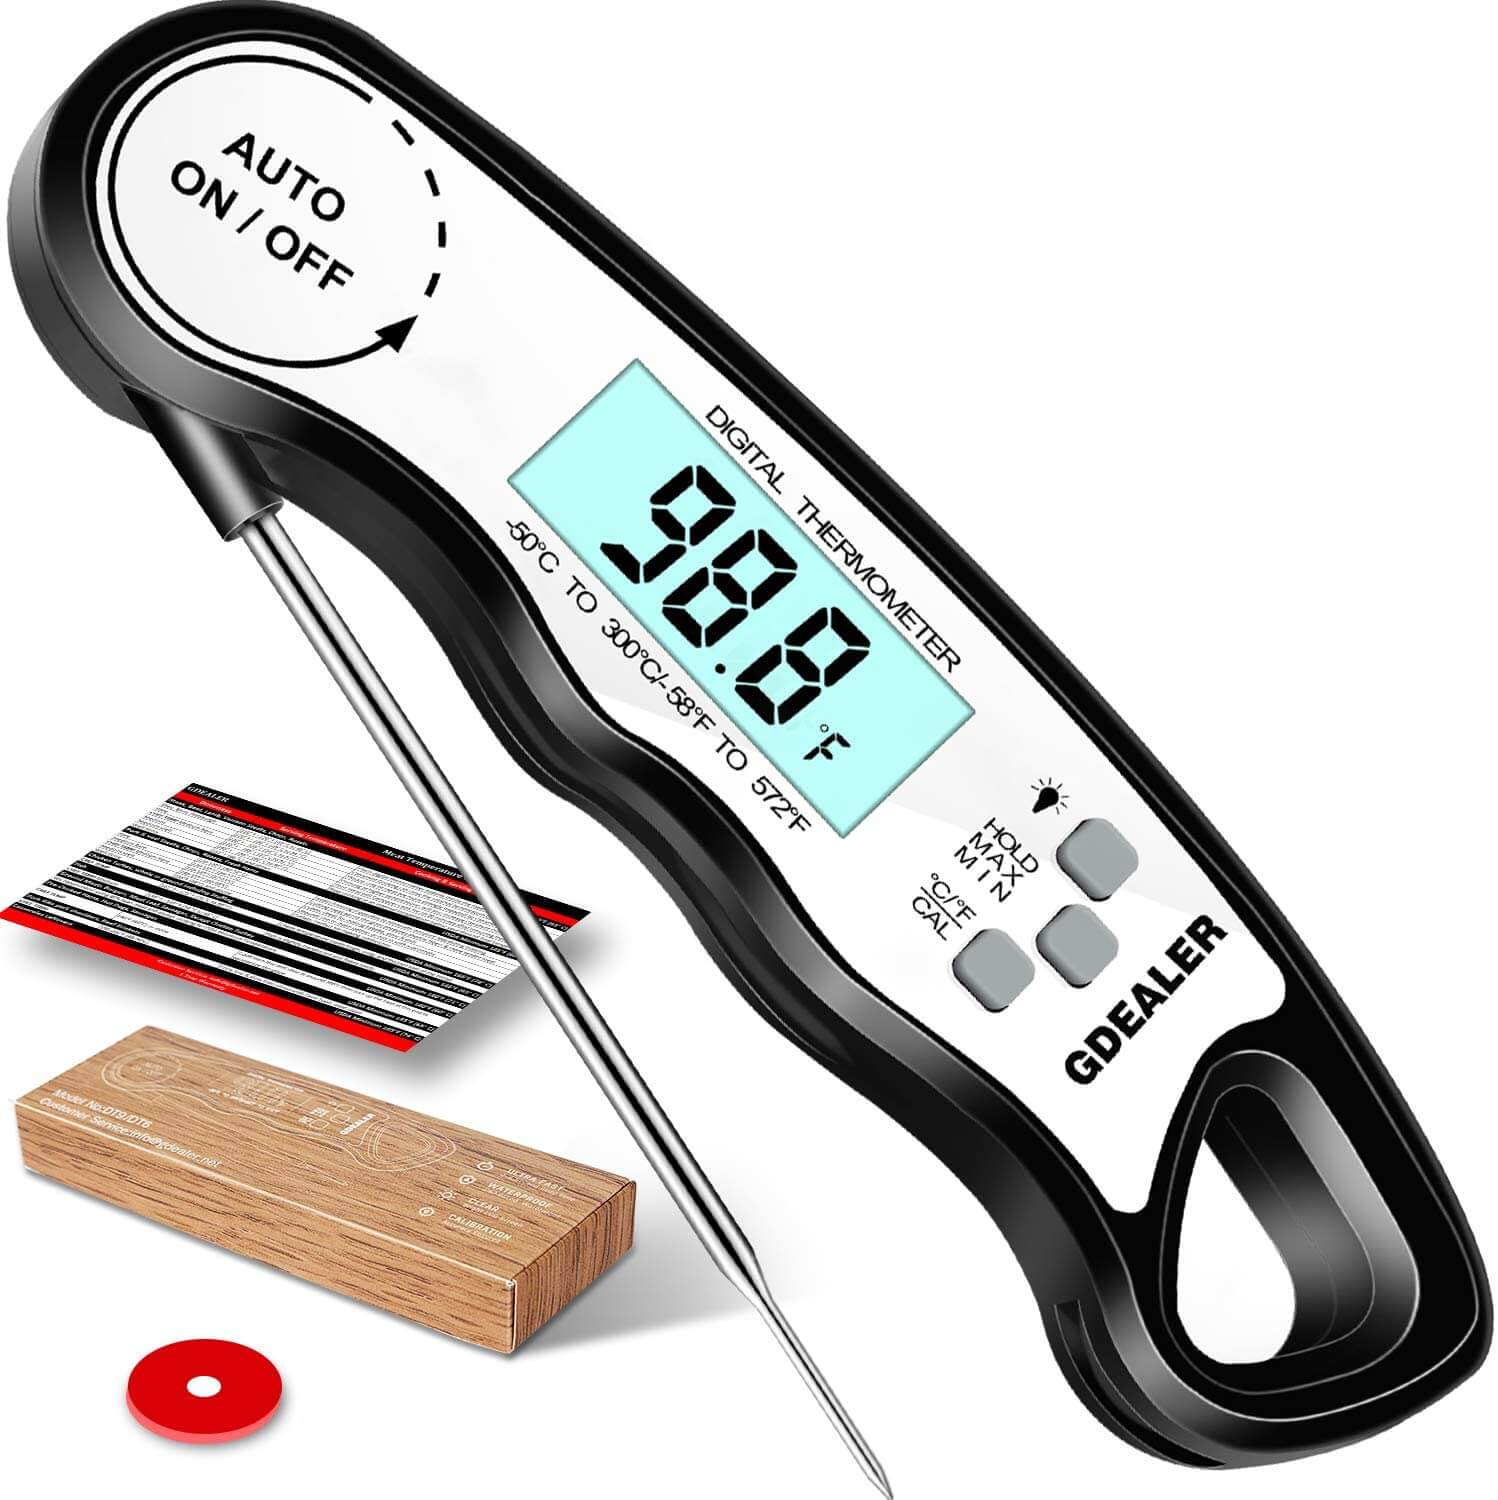 GDEALER DT6 Instant Read Meat Thermometer